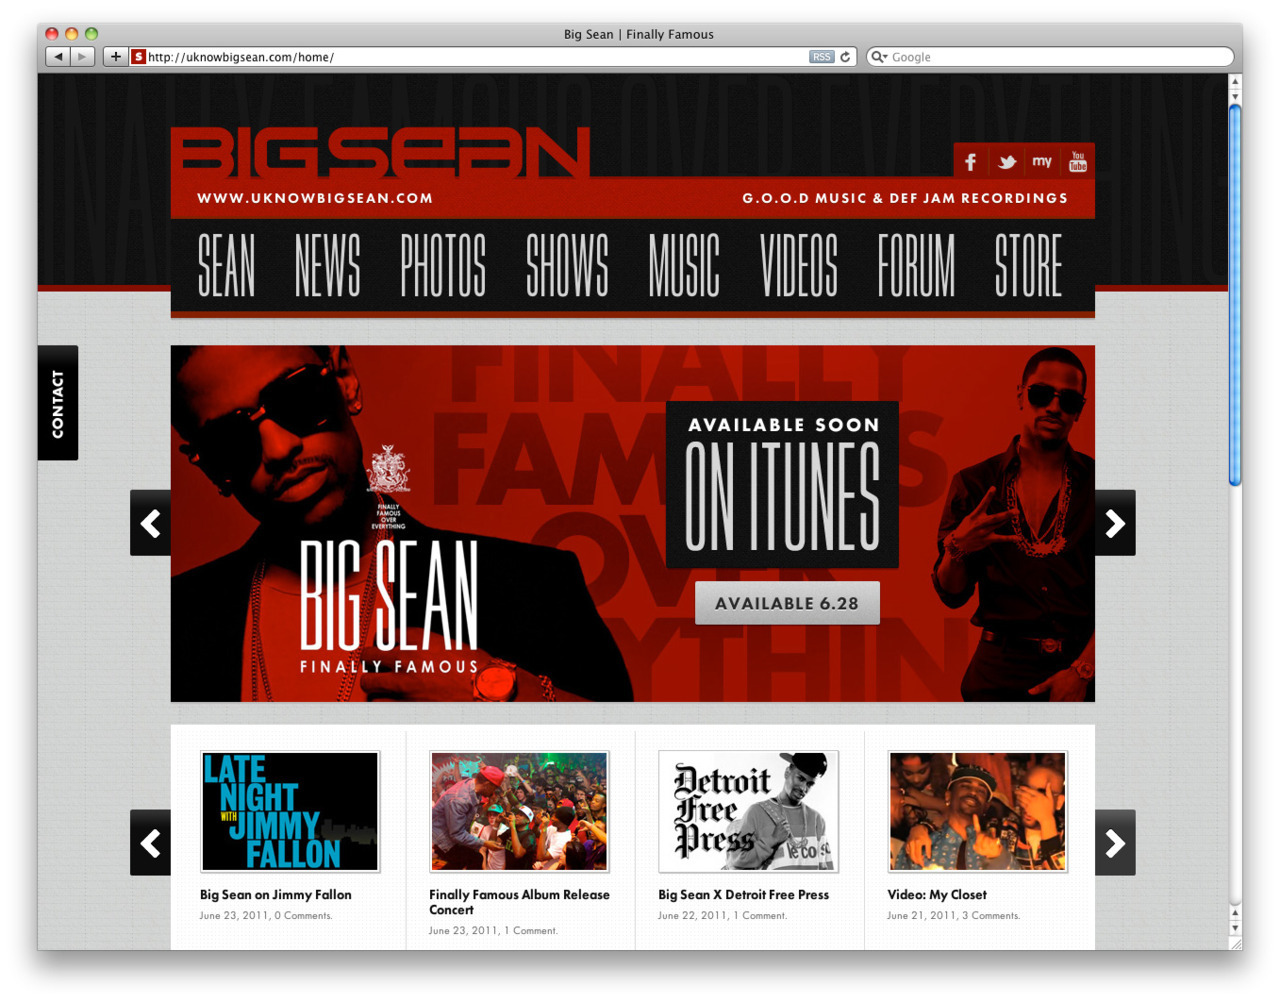 Just launched the Official Website of Big Sean, from Kanye West's label G.O.O.D. Music. http://uknowbigsean.com/home/ Design, code, everything by Create.ph.